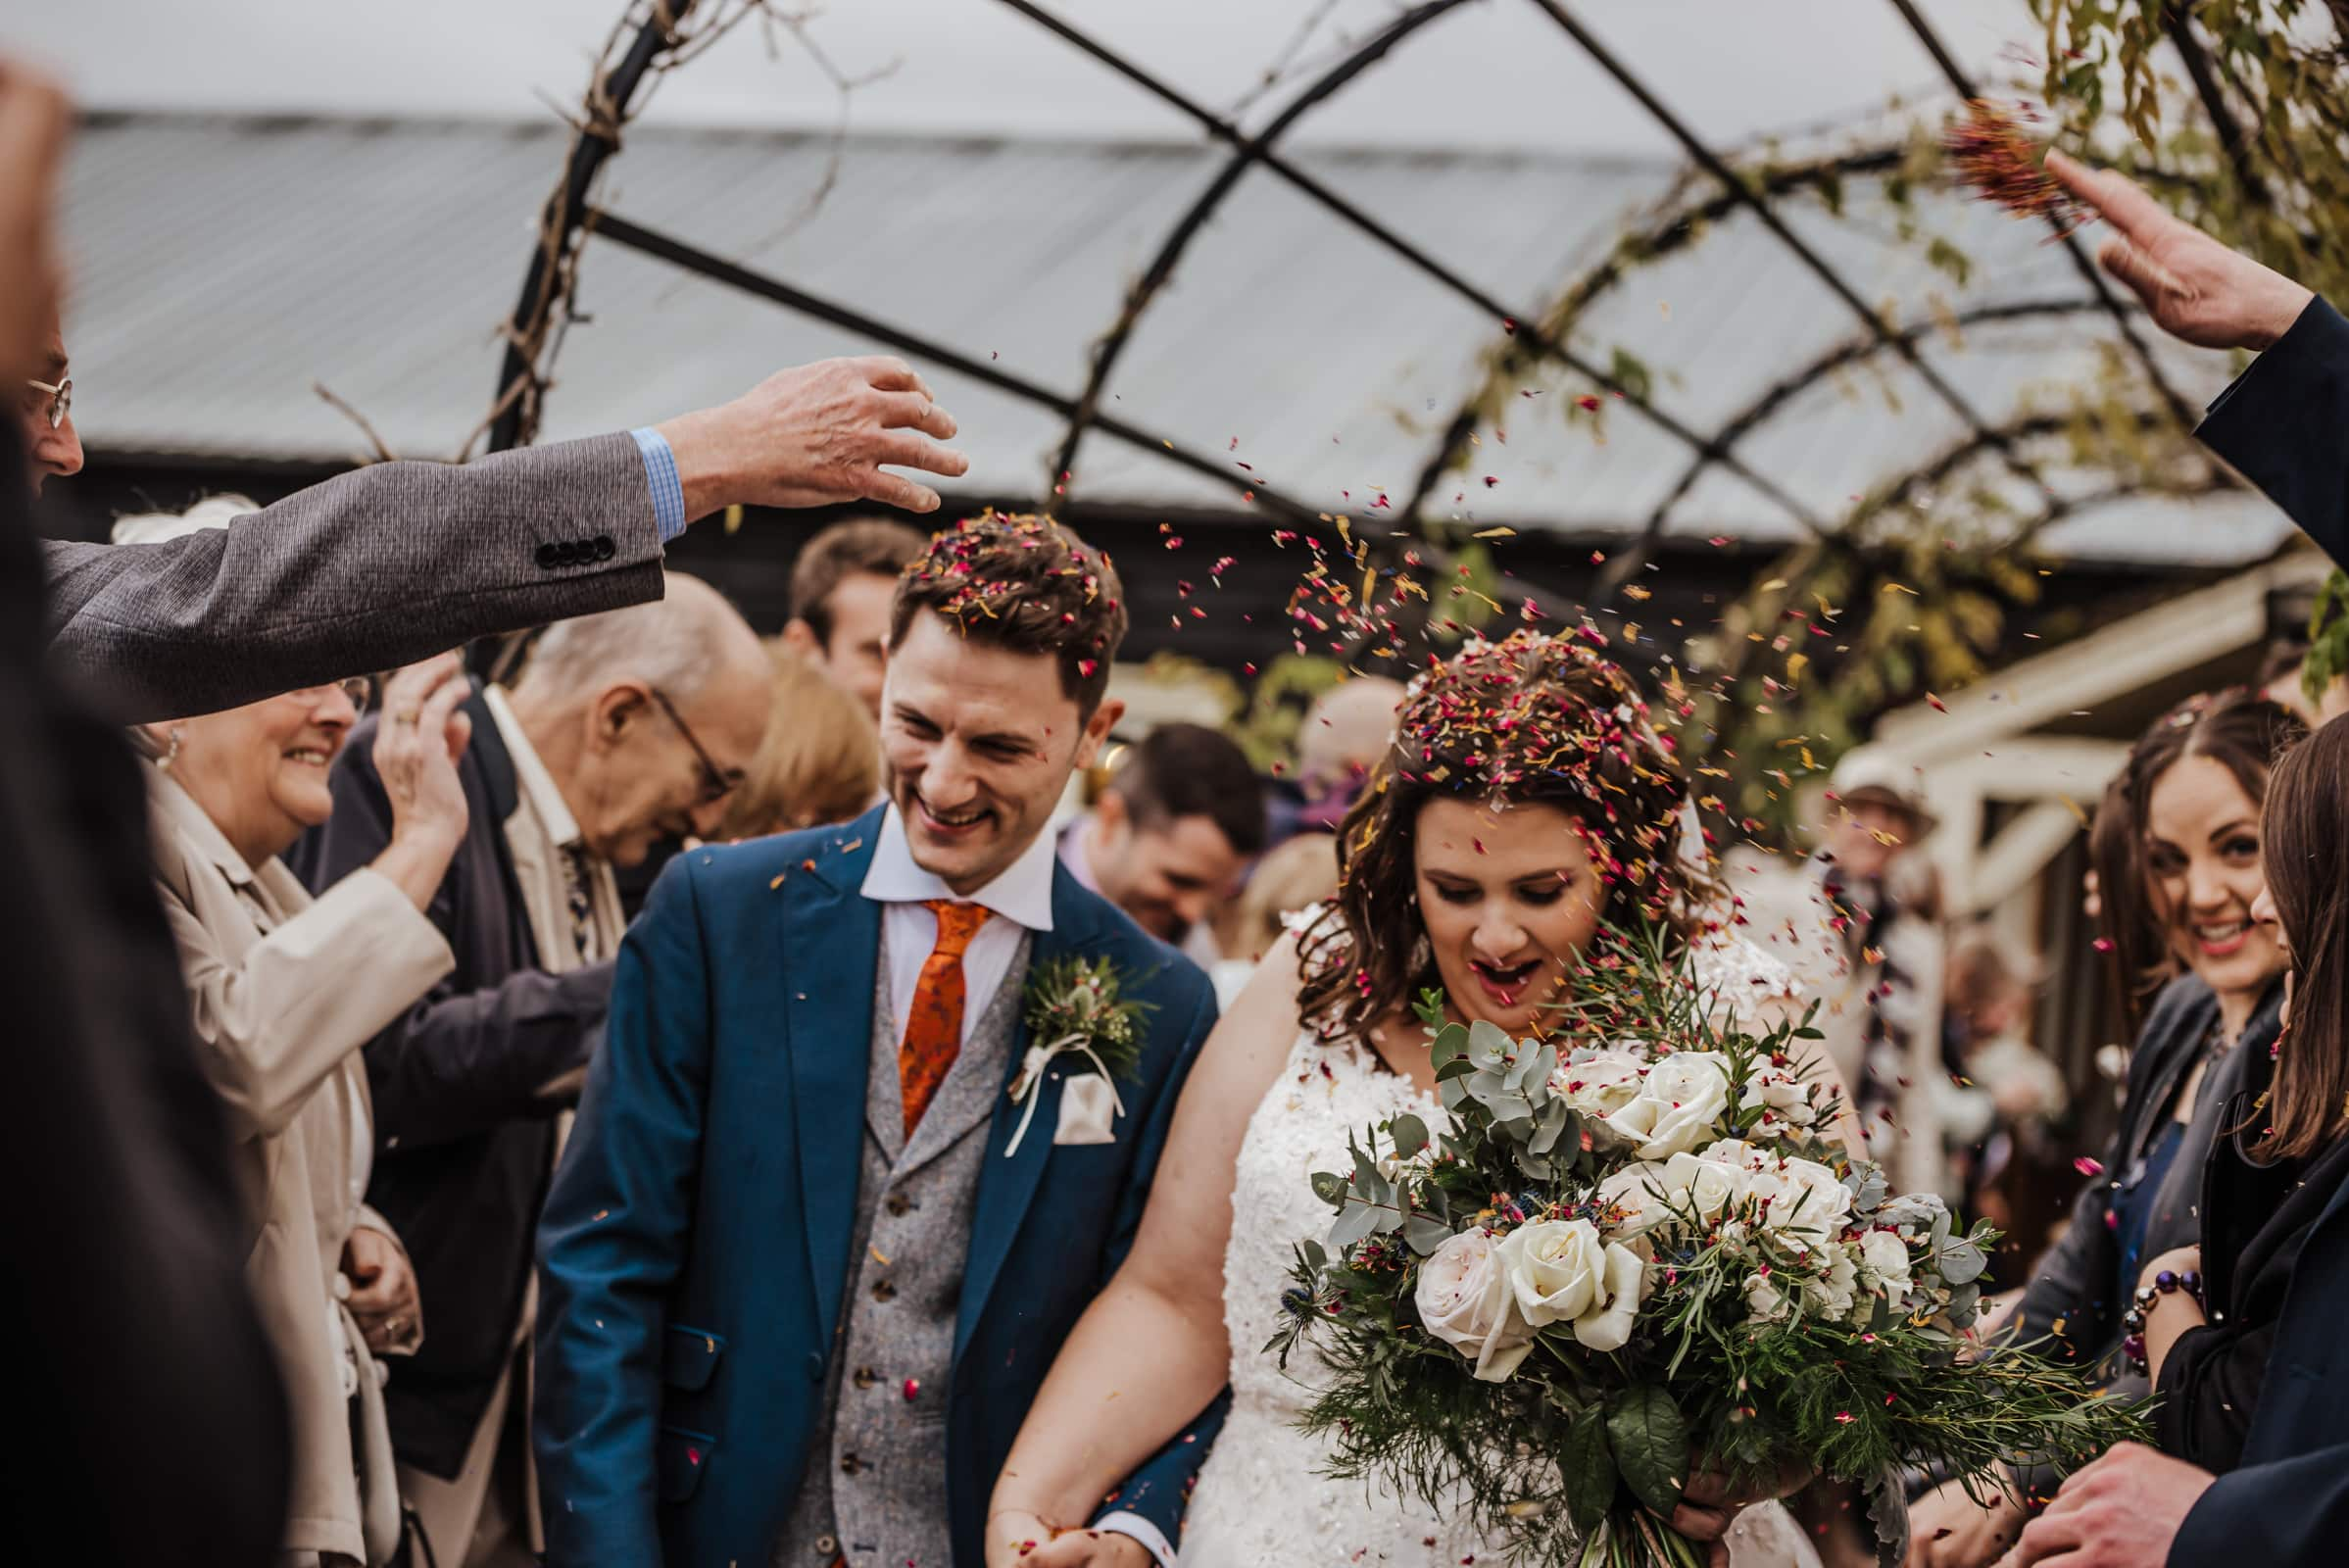 Confetti of Groom and bride after the wedding ceremony Roshni photography The Milling Barn, Bluntswood Hall, Throcking wedding photographer